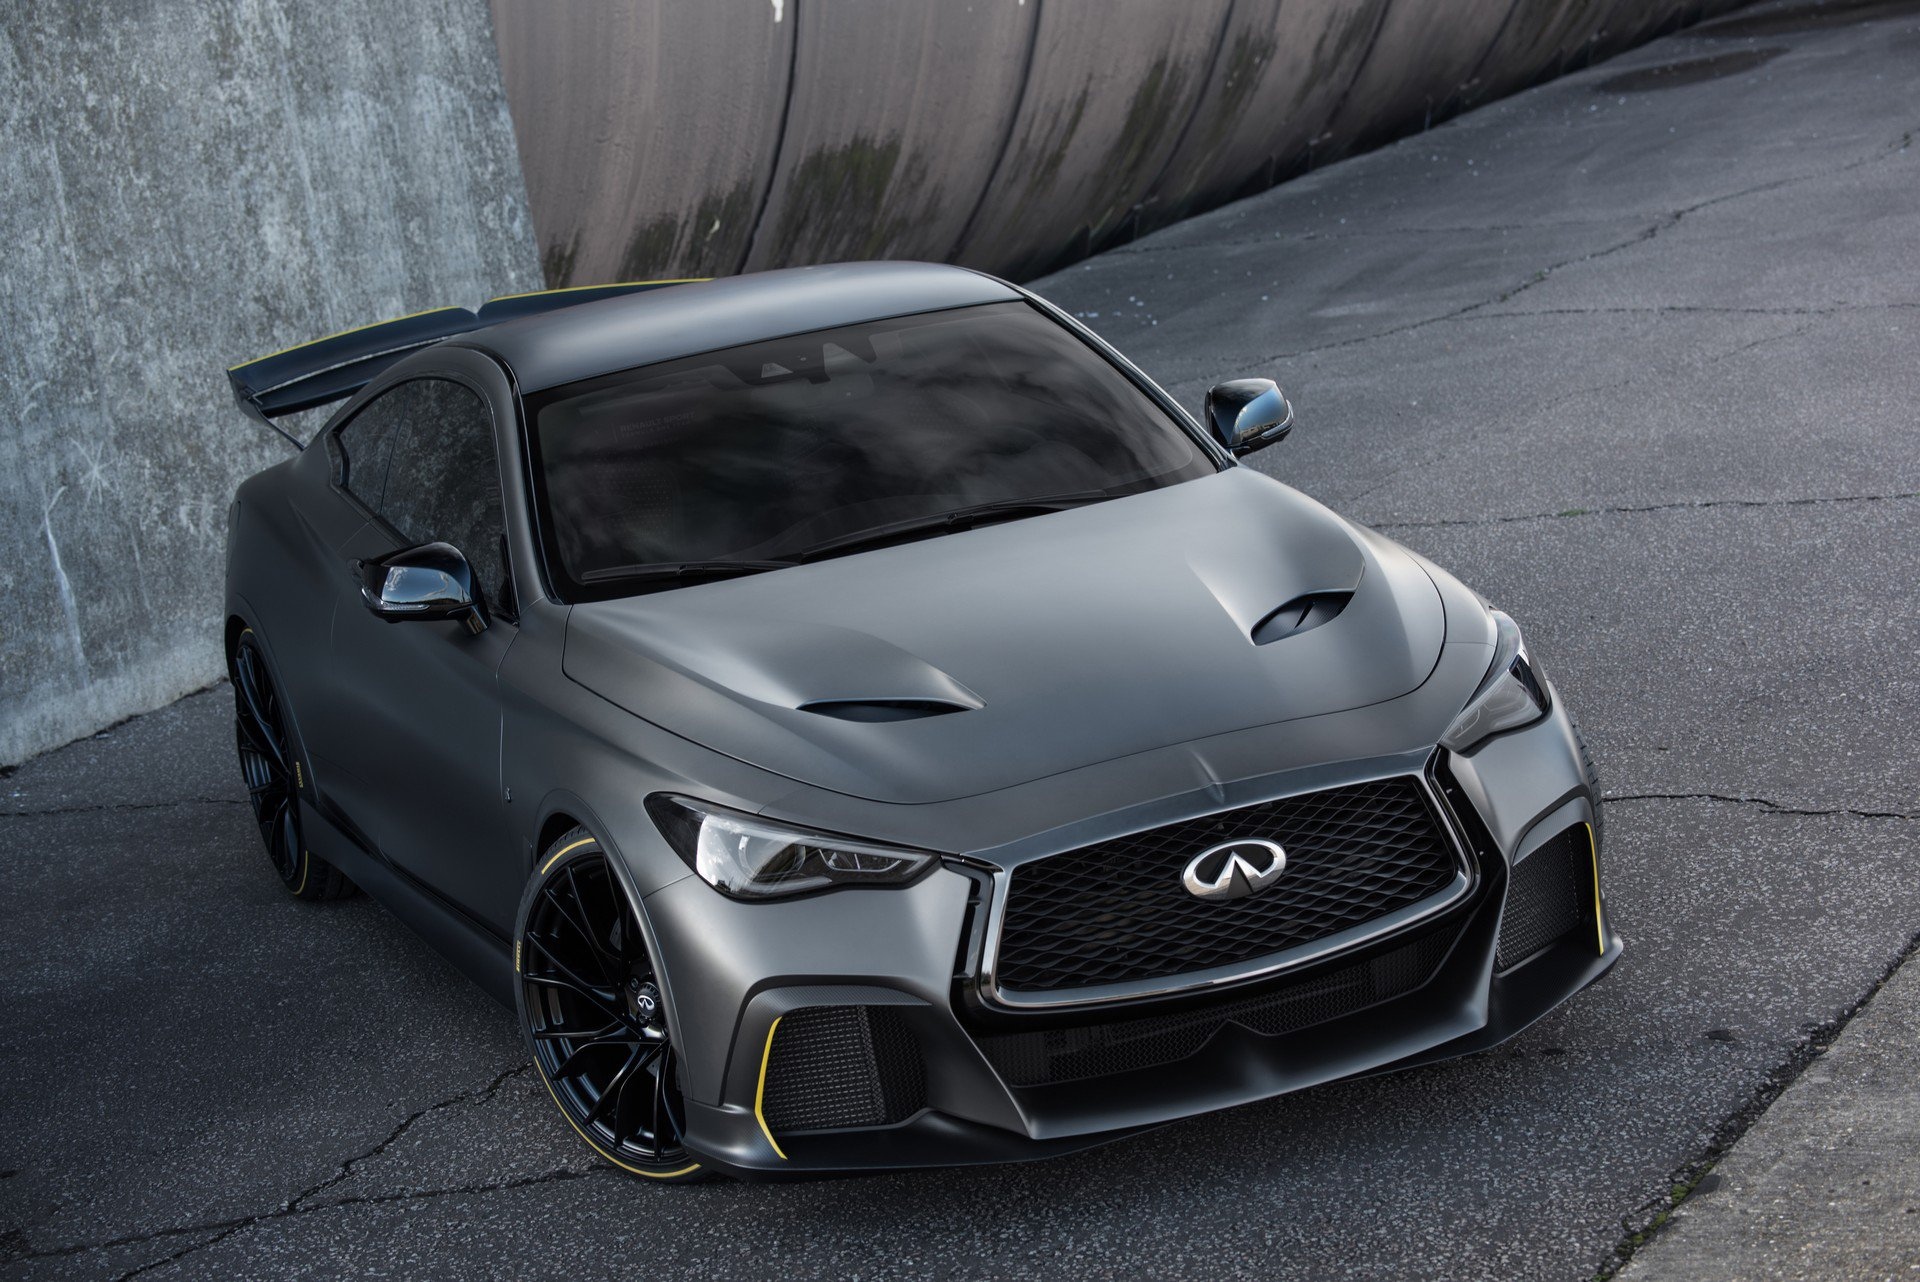 Infiniti Project Black S Prototype (11)